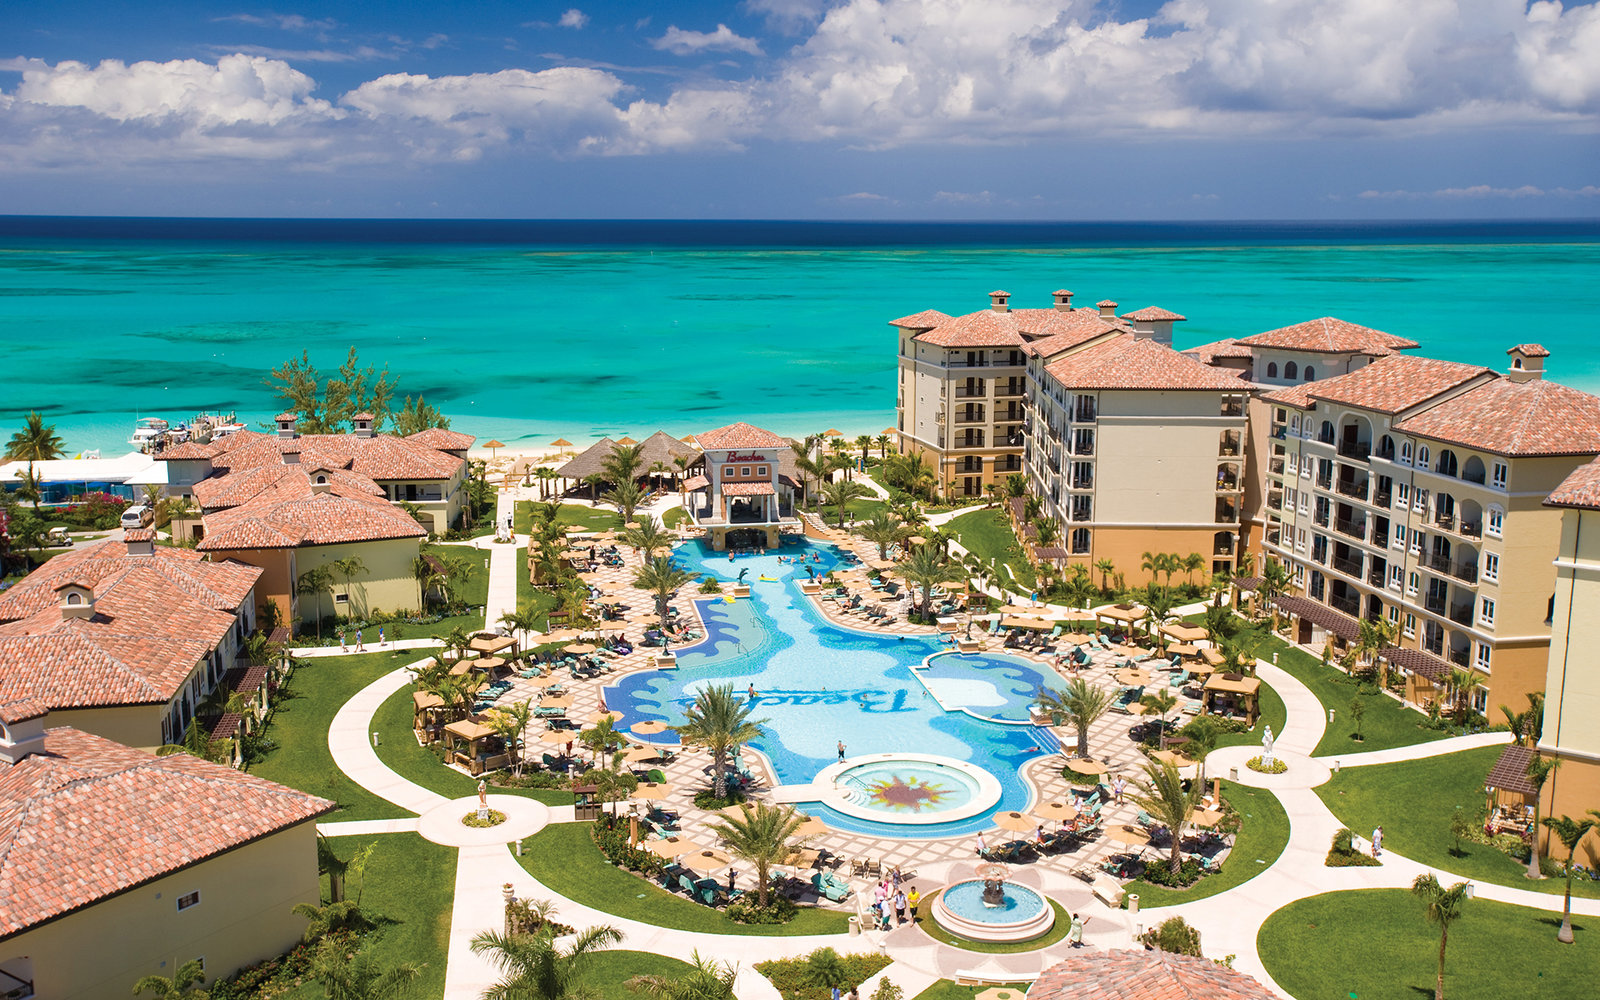 Are There Casinos In Turks And Caicos